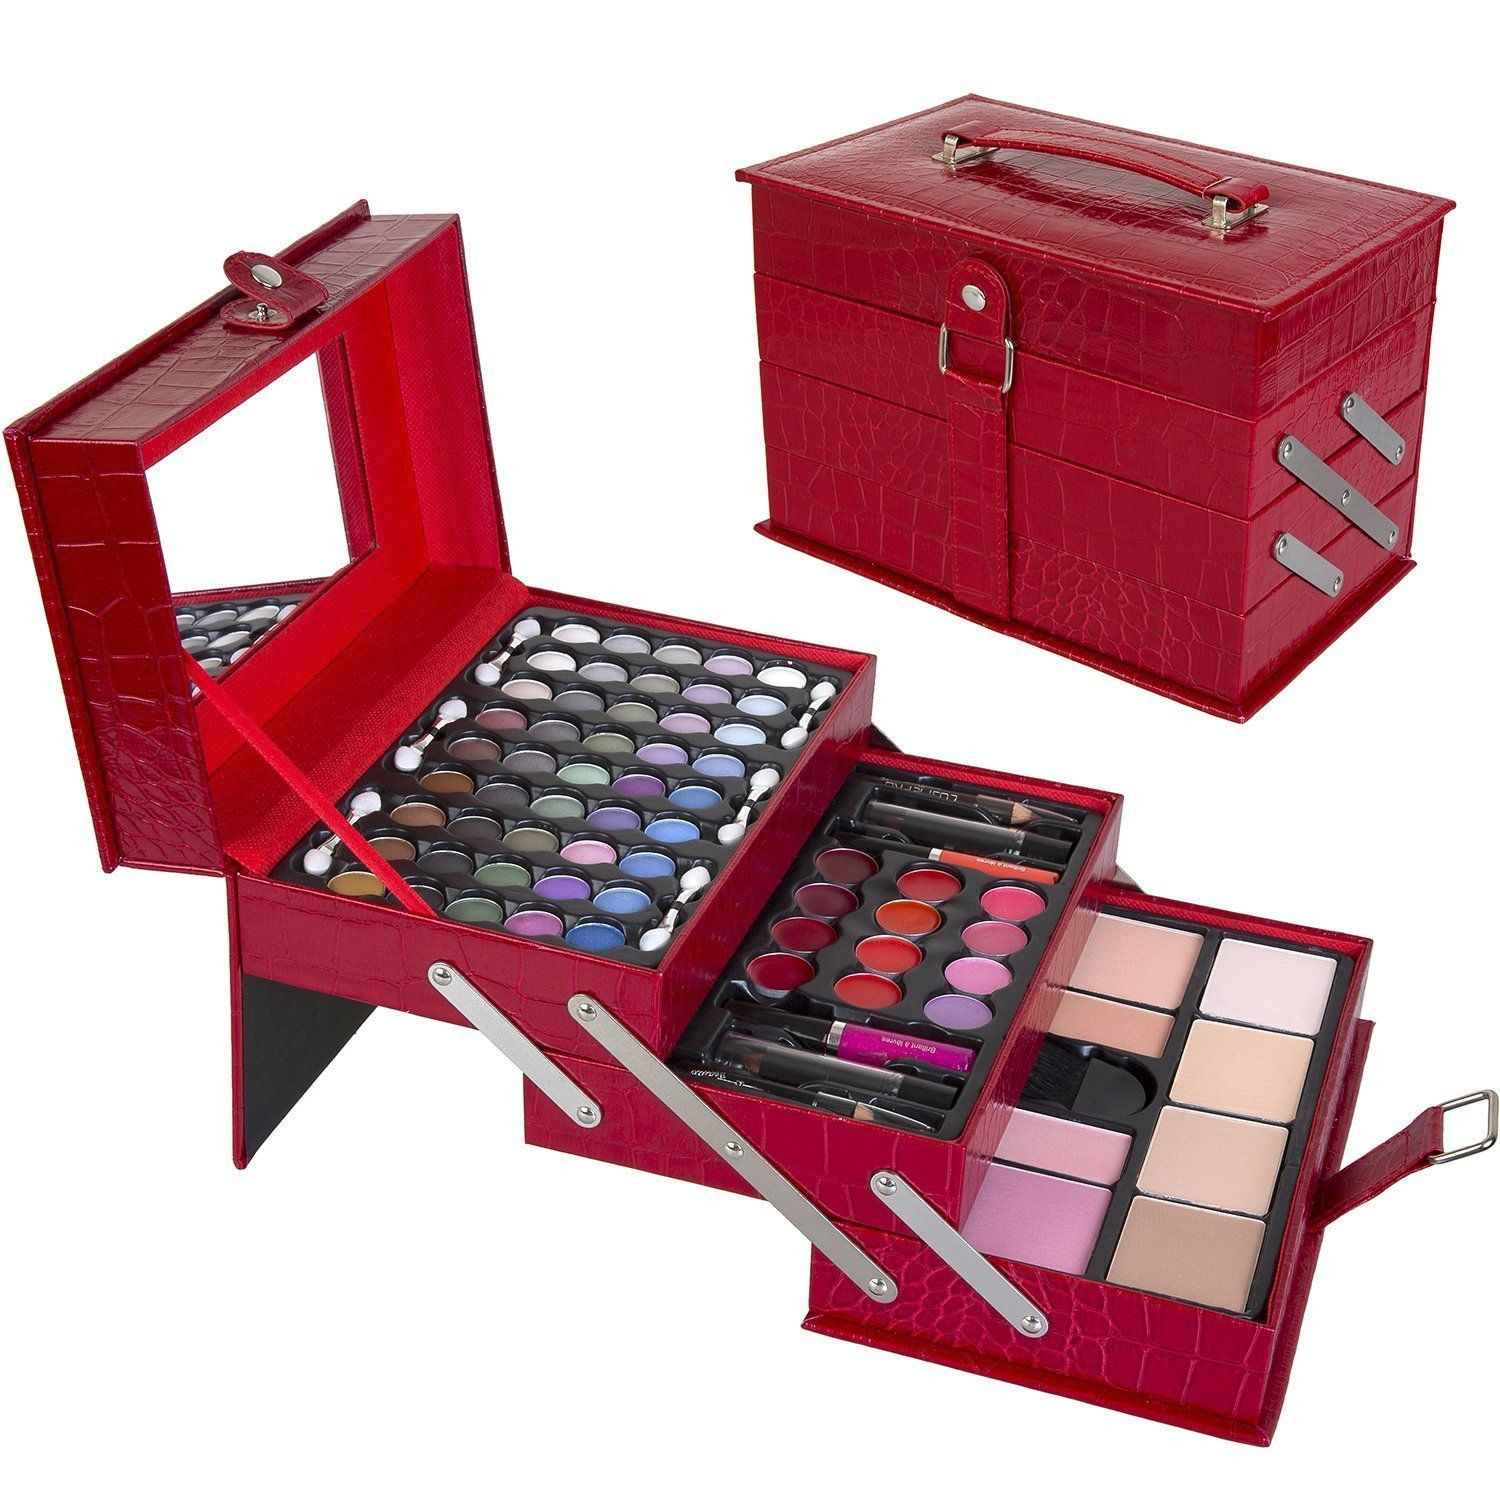 Ivation AllInOne Makeup Kit in Highly Fashionable Red